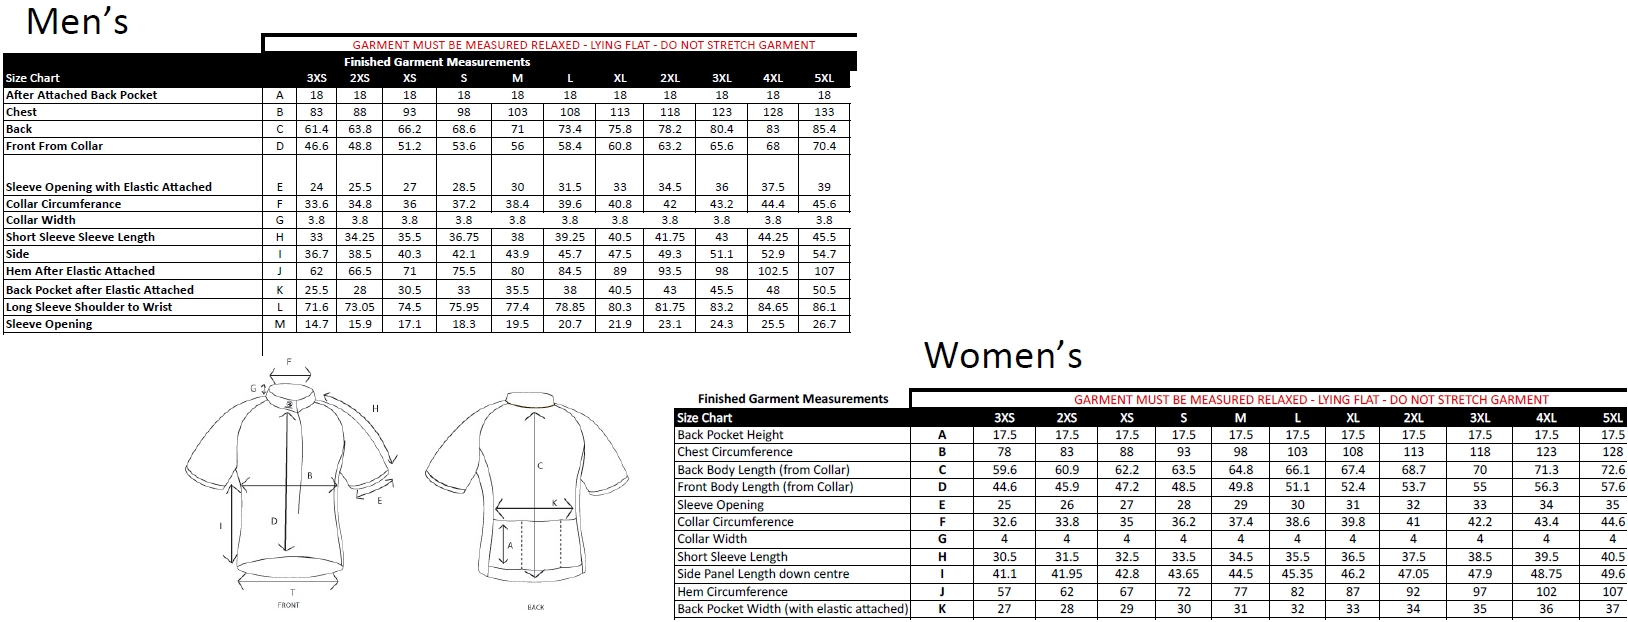 15R4P jersey sizing